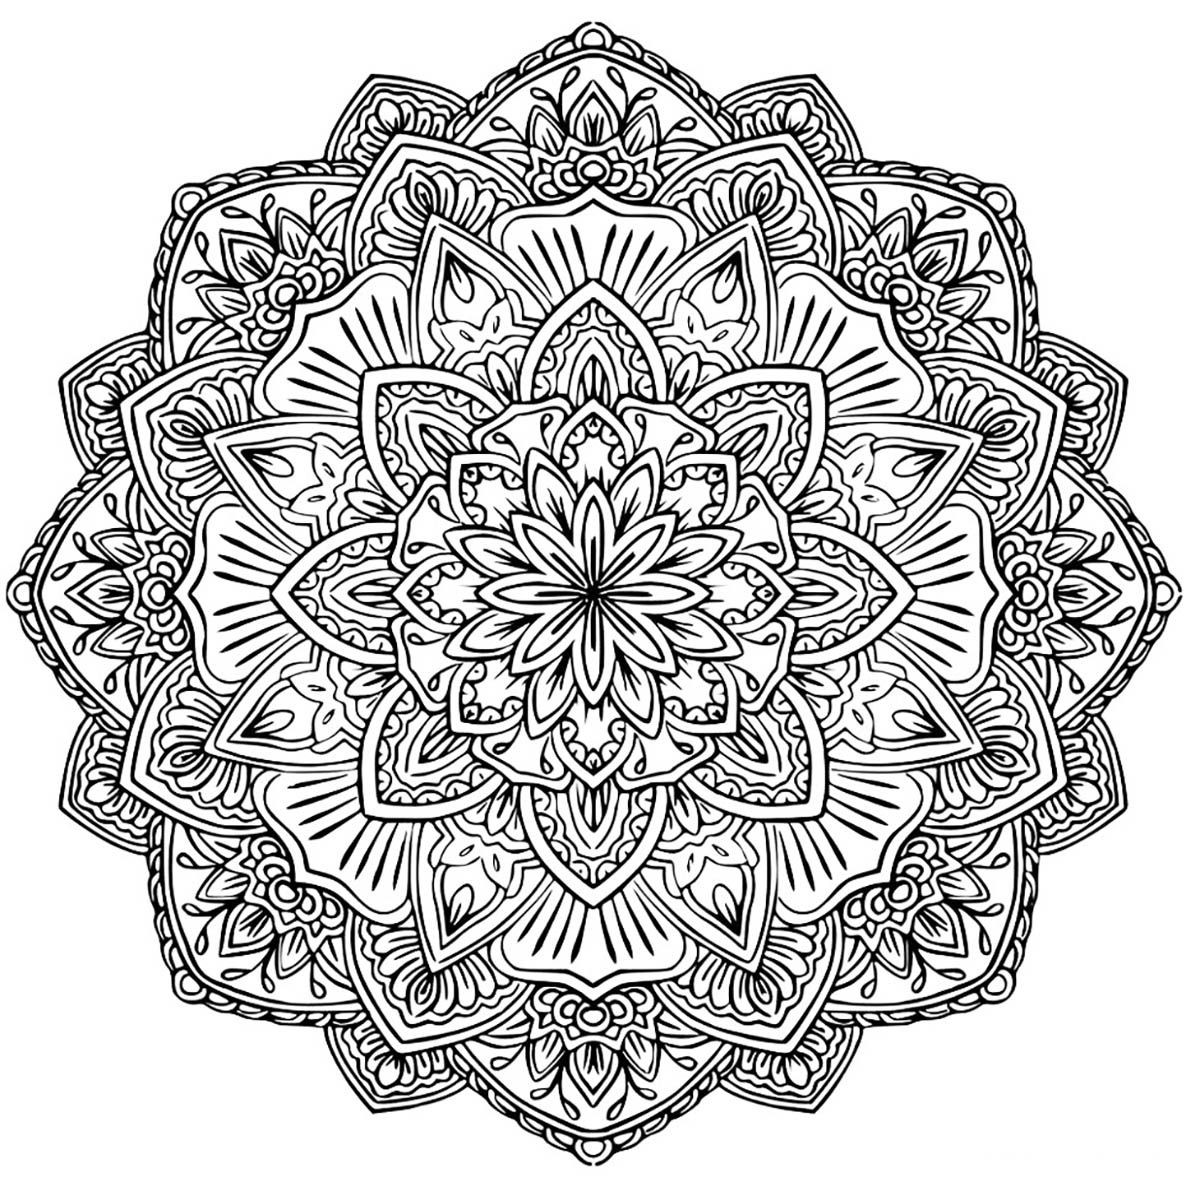 Here Are Difficult Mandalas Coloring Pages For Adults To Print For